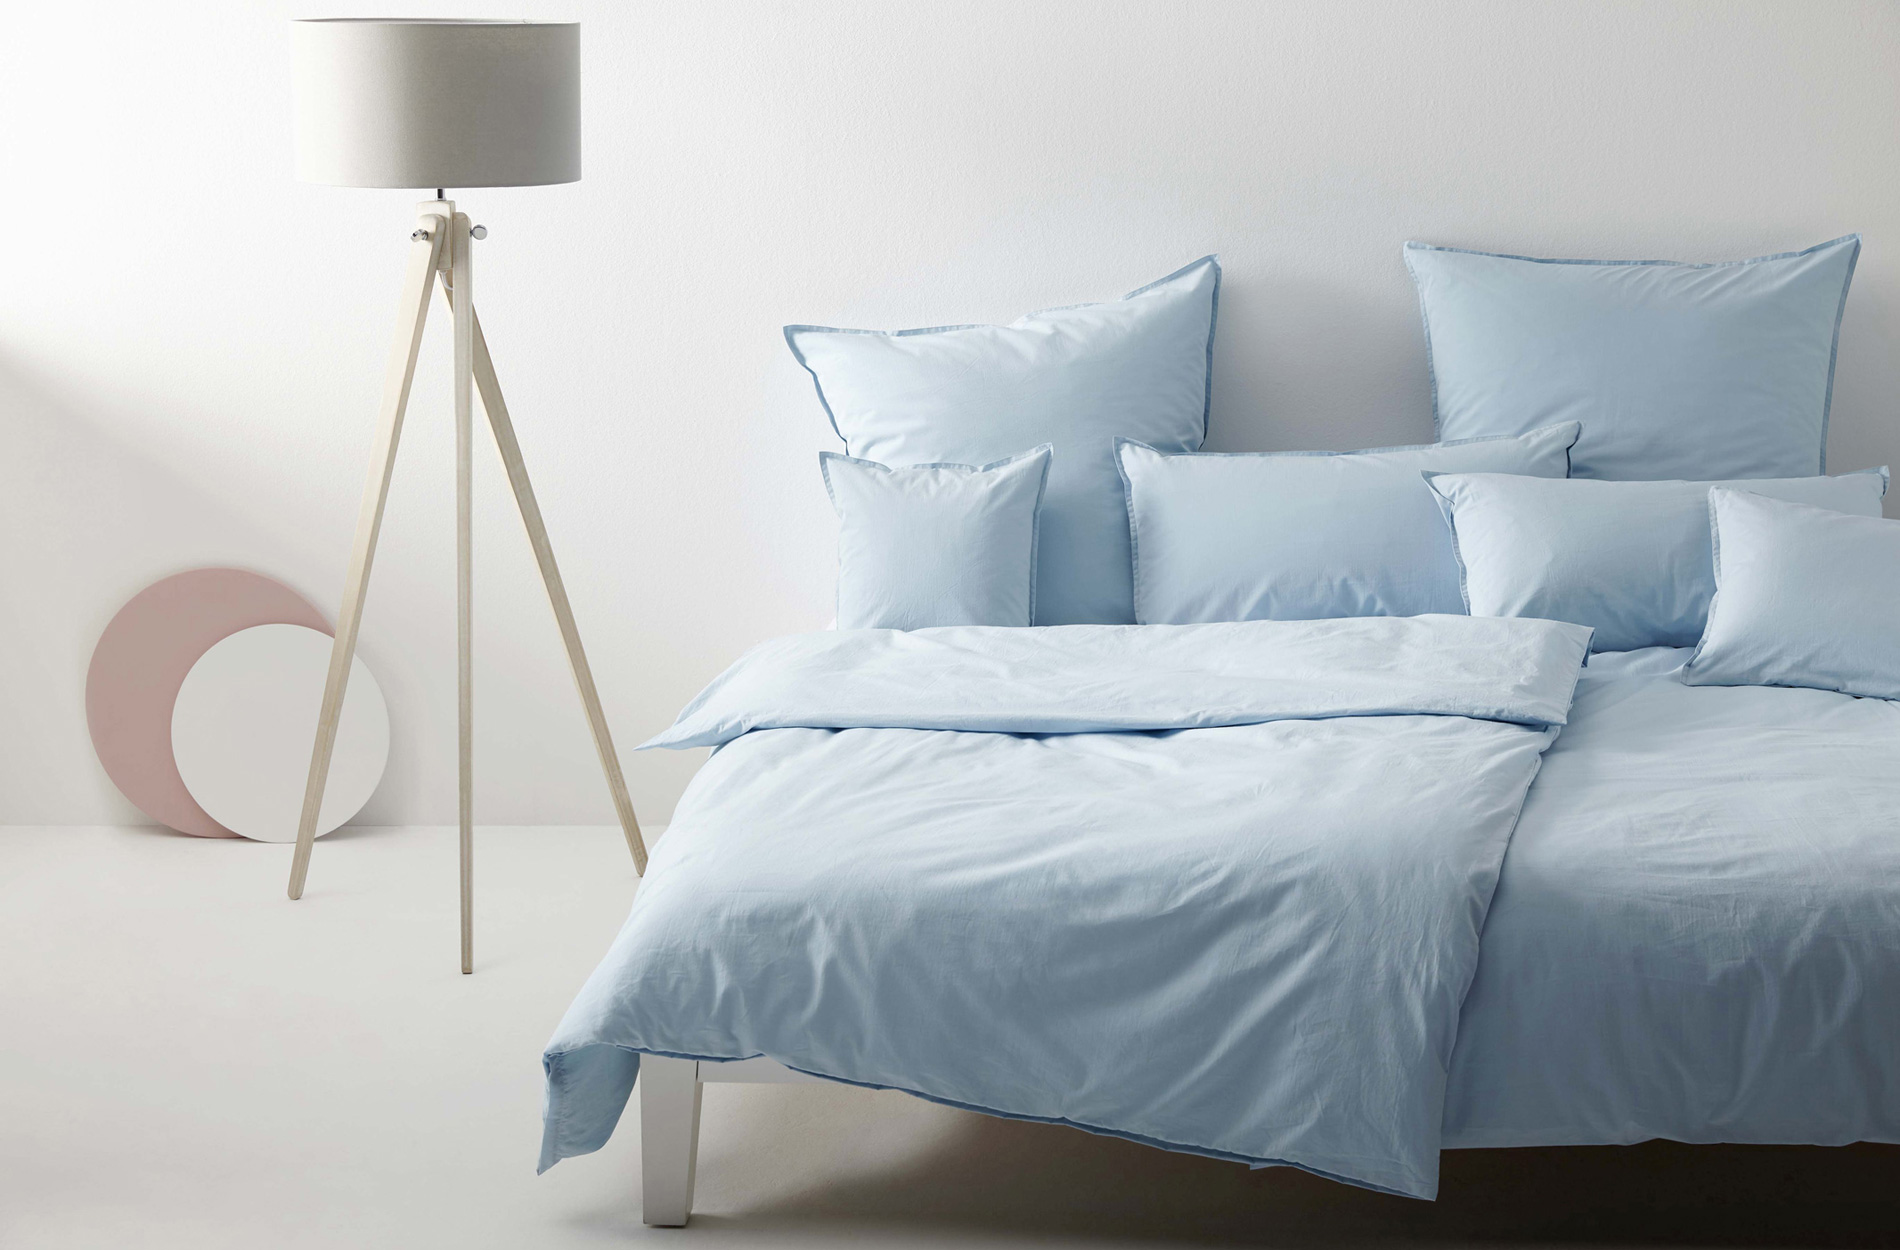 Elegance Bettwäsche Elegante Bed Linen Made For Fantastic Dreams Marc Leopold